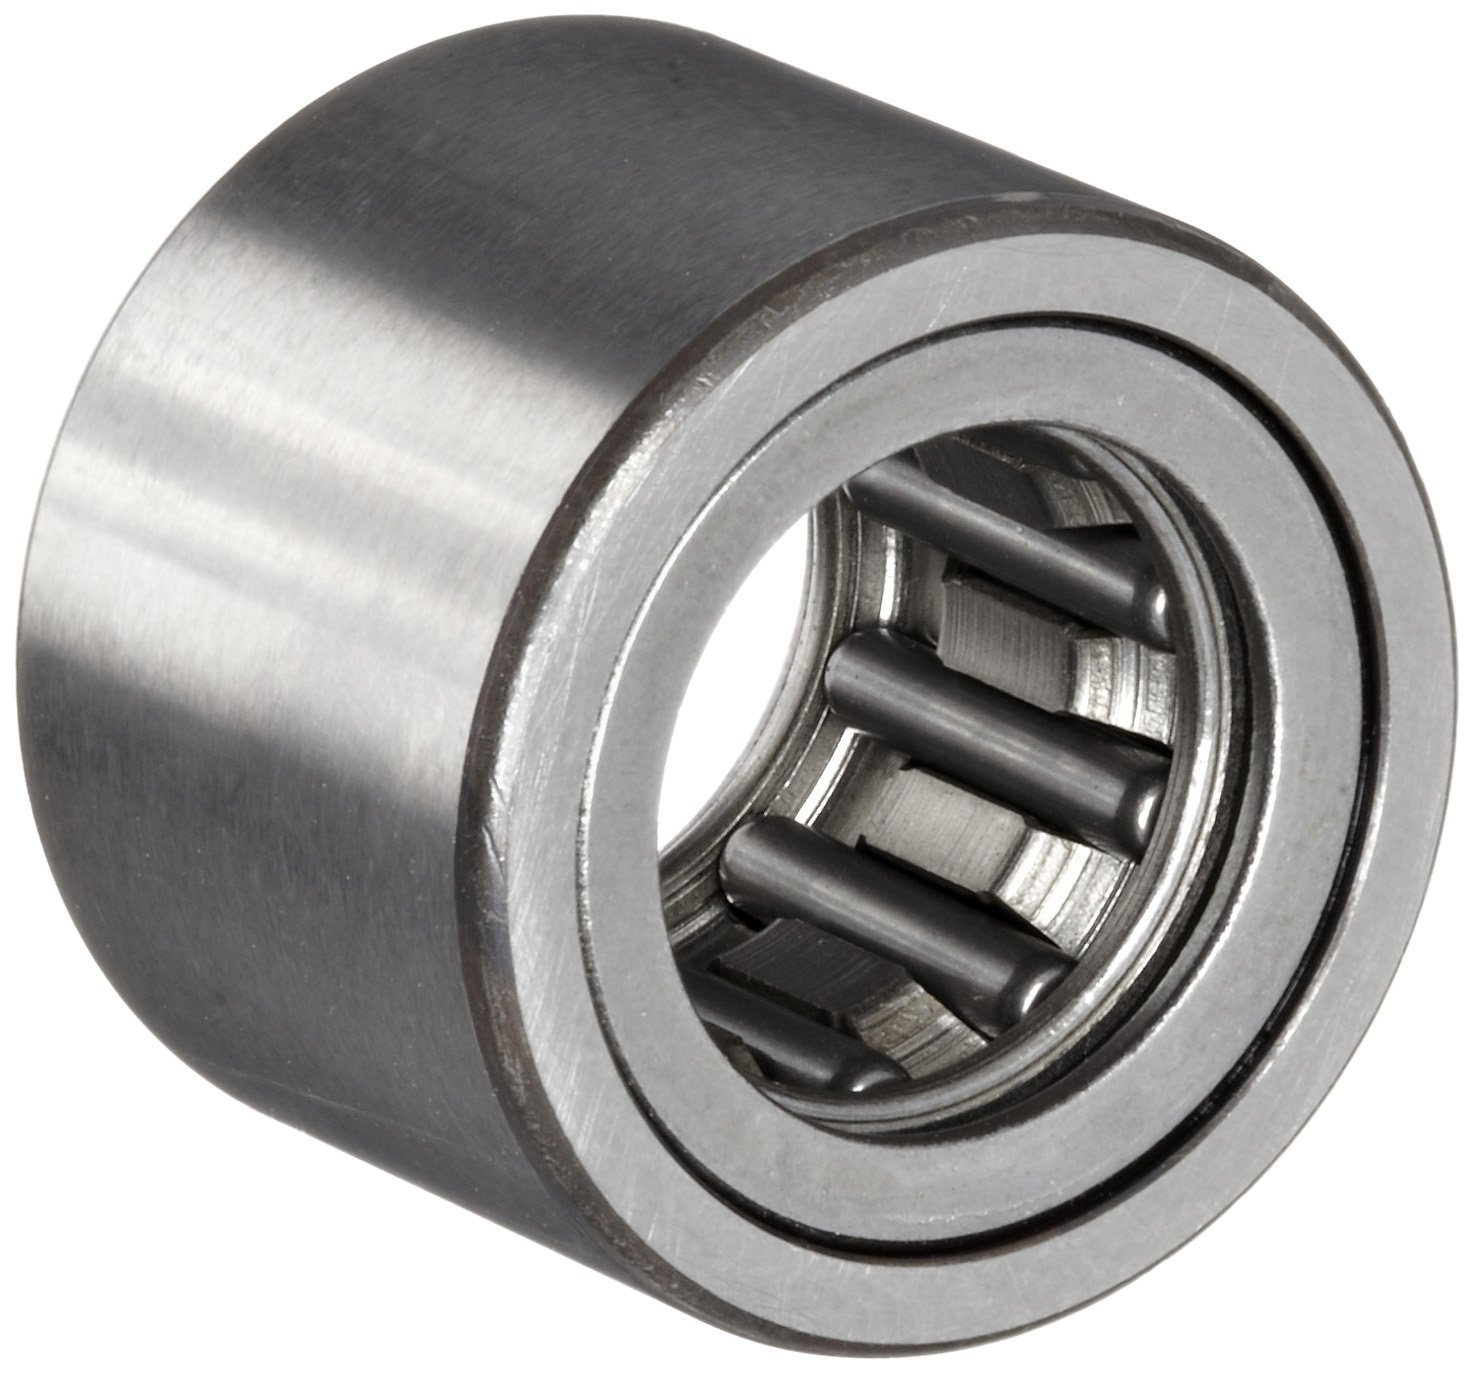 45mm Width Koyo Torrington Oil Hole Koyo RNA6911A Needle Roller Bearing Metric 63mm ID Steel Cage Open Outer Ring and Roller 80mm OD